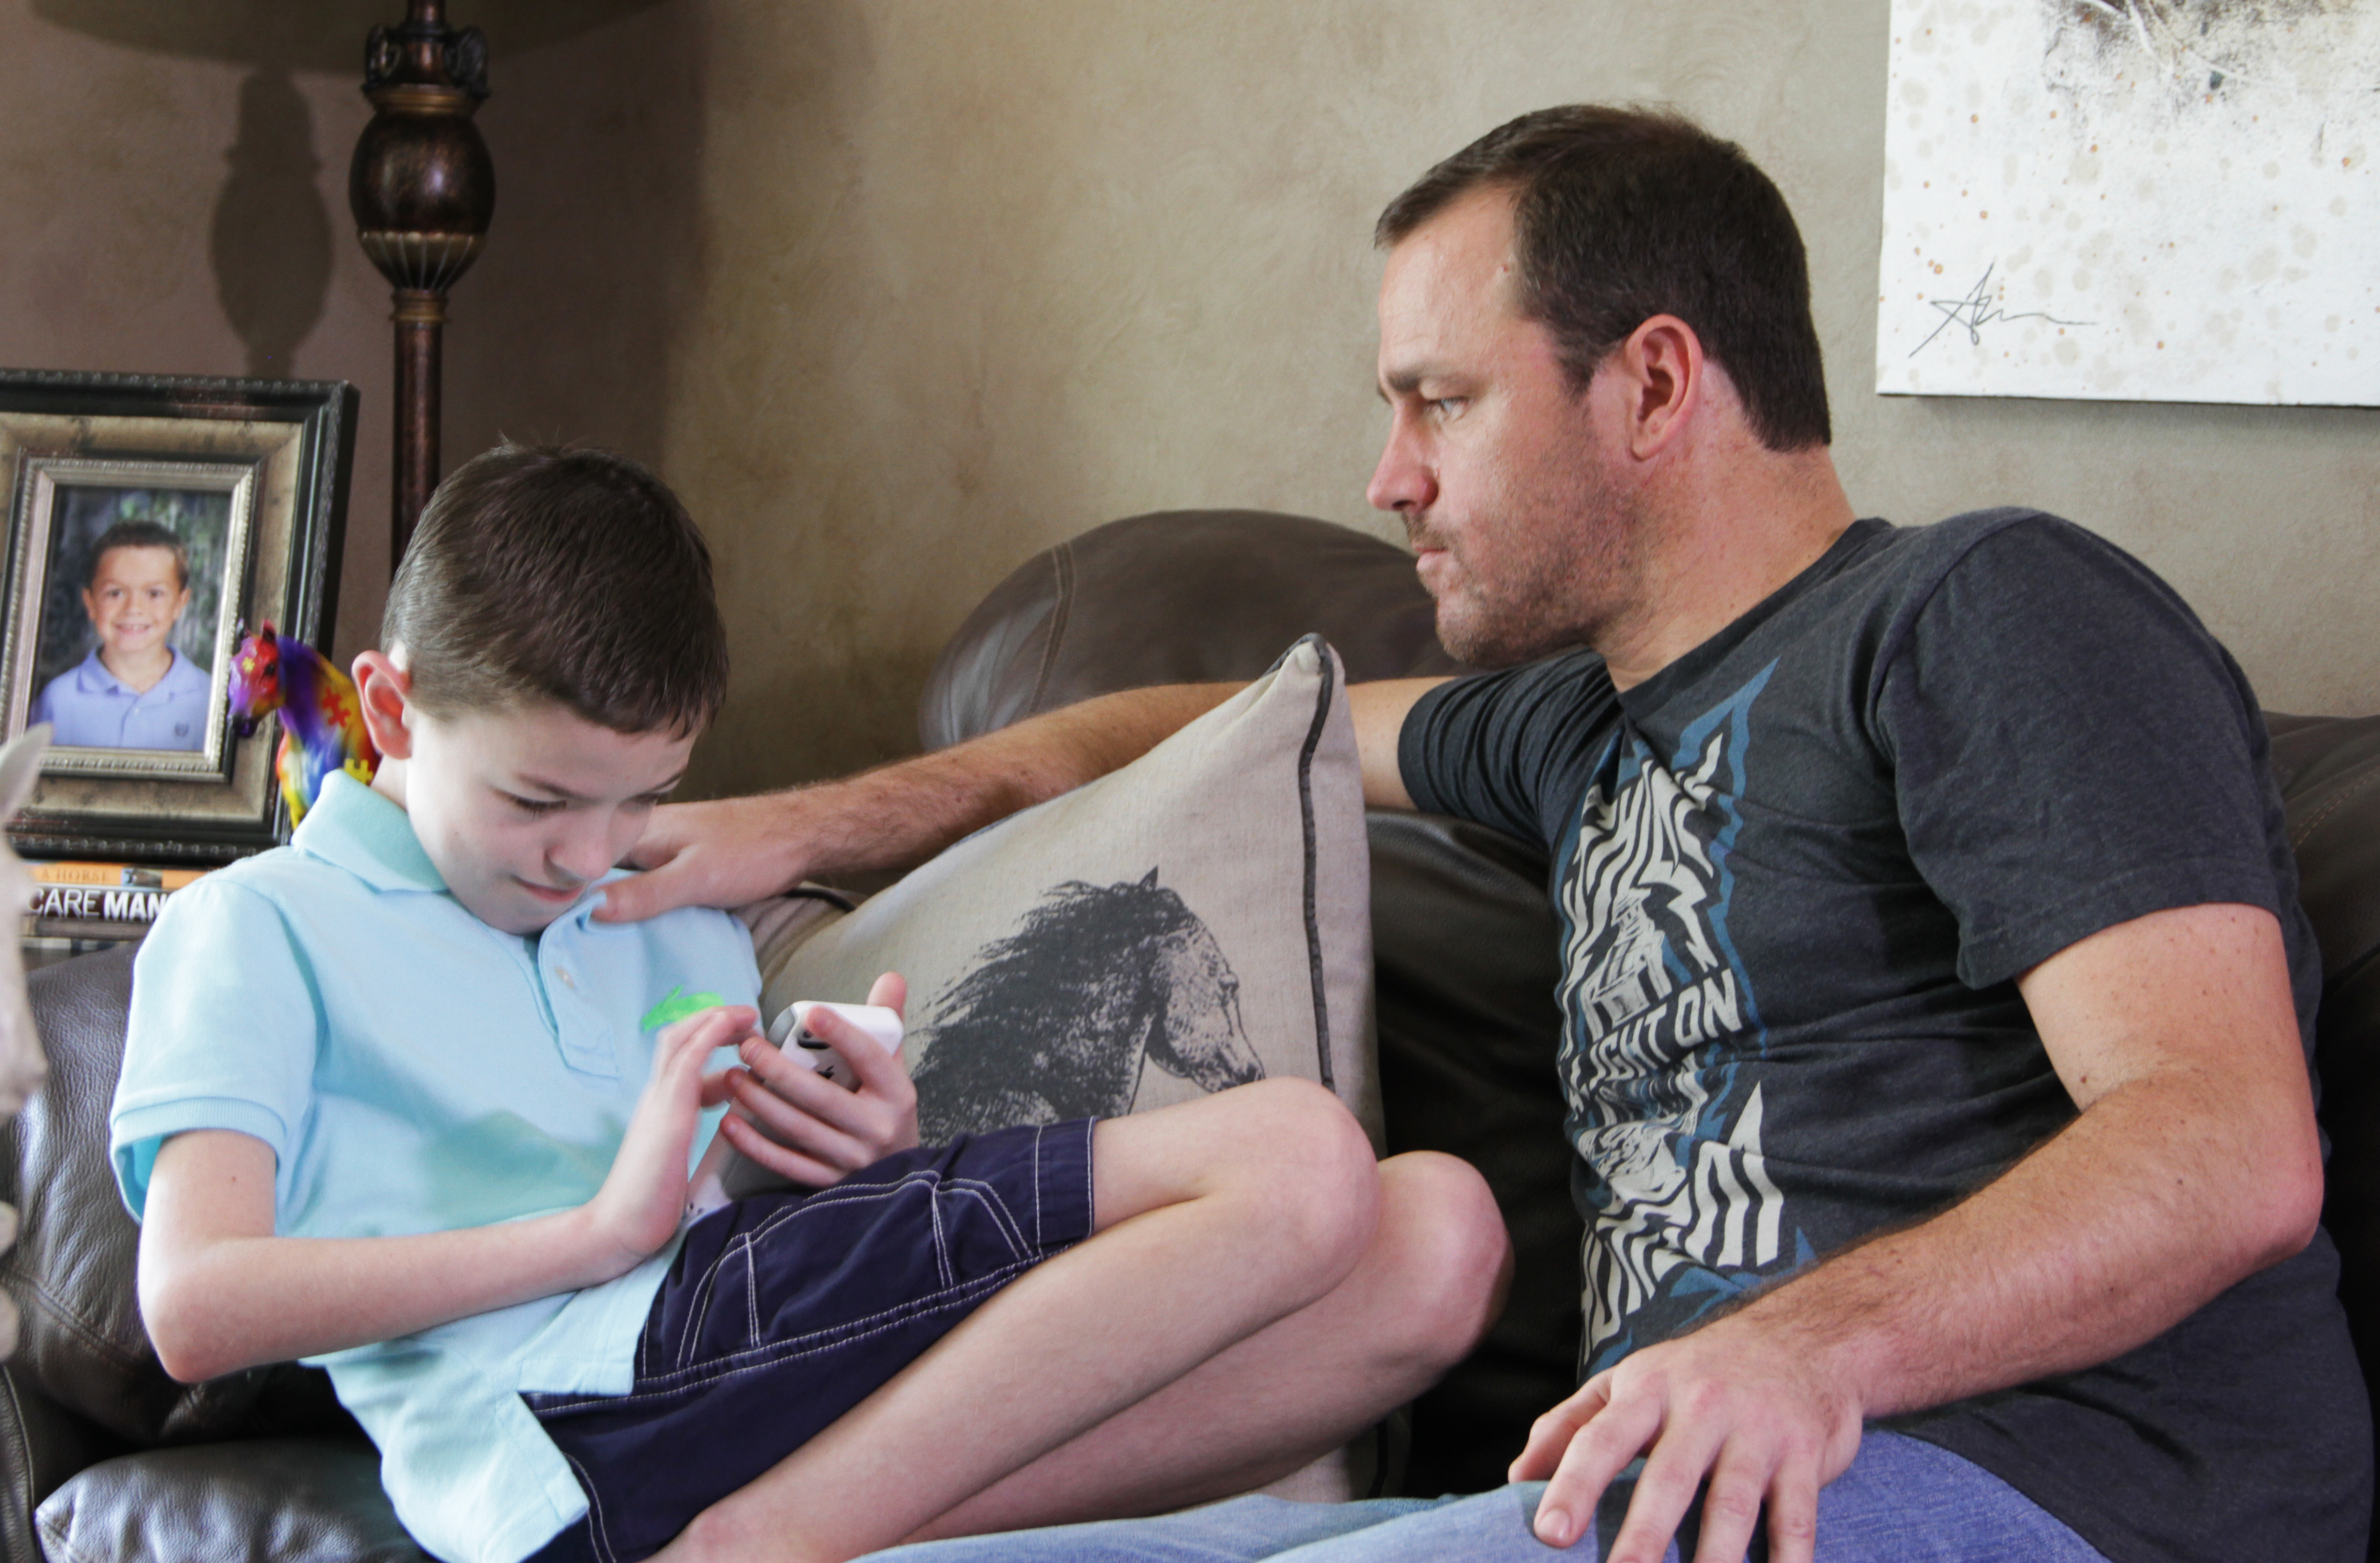 Study Young Kids With Autism Behave Better If Parents Are Trained